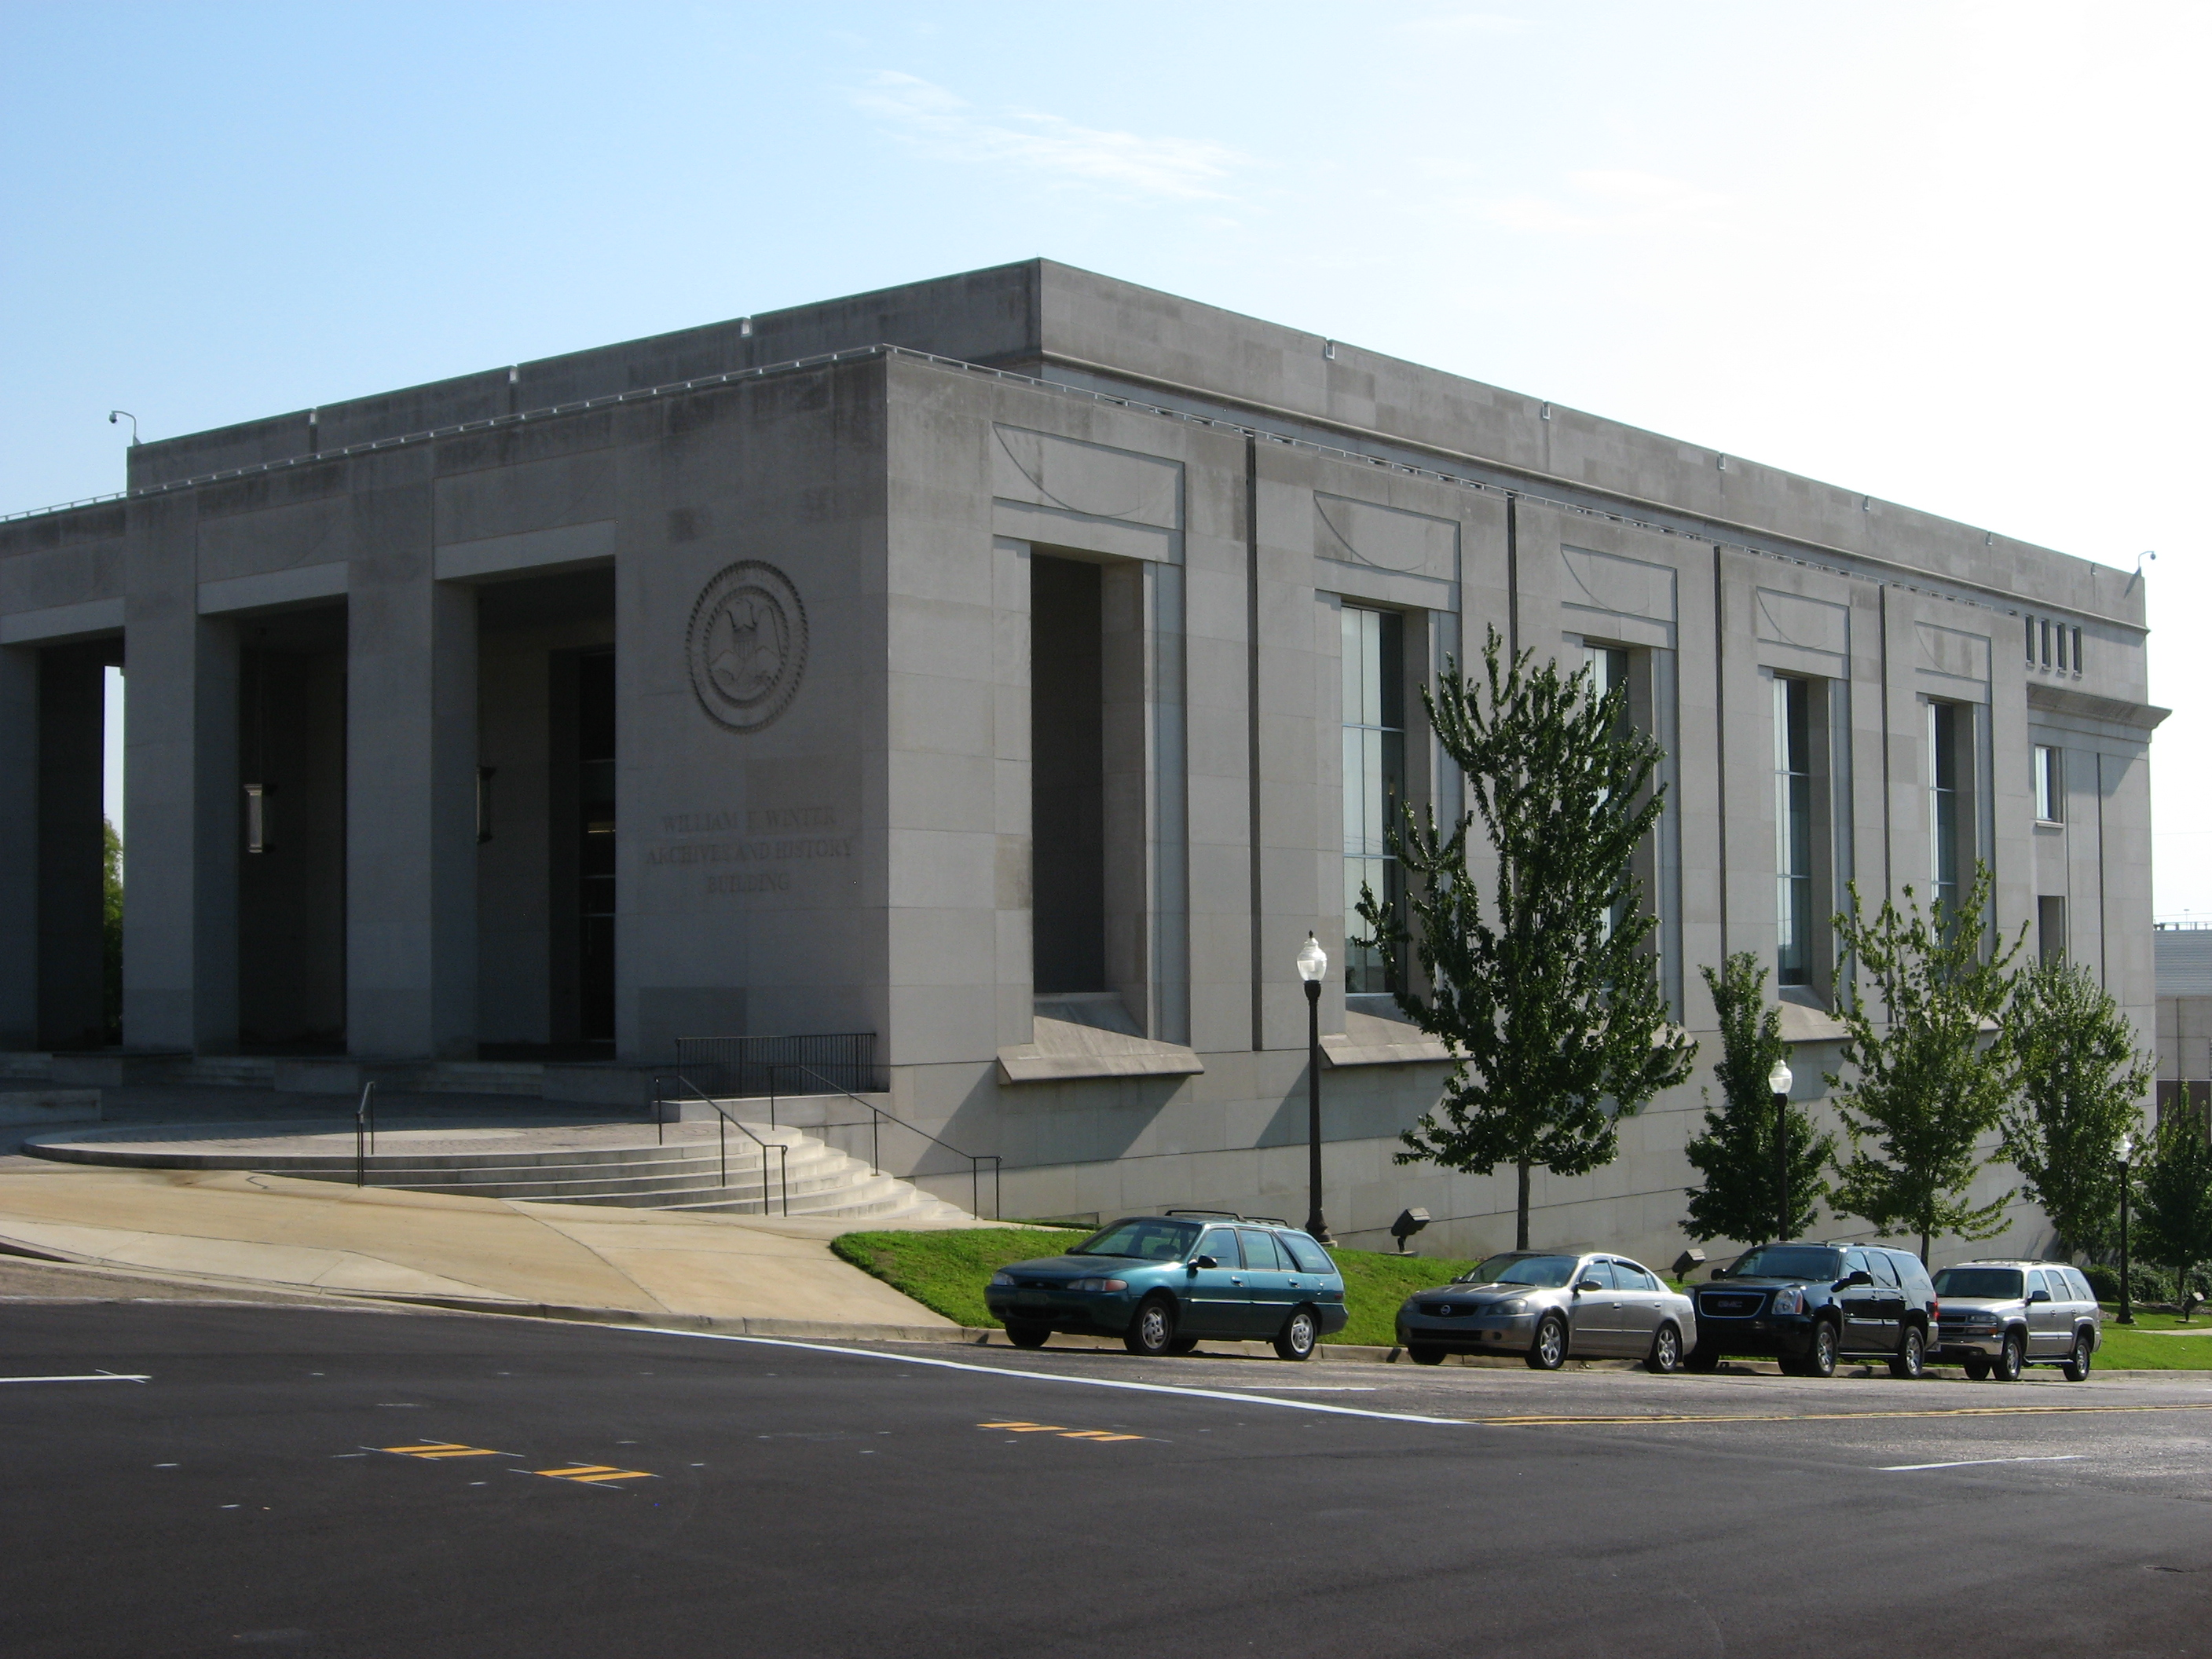 William F. Winter Archives and History Building